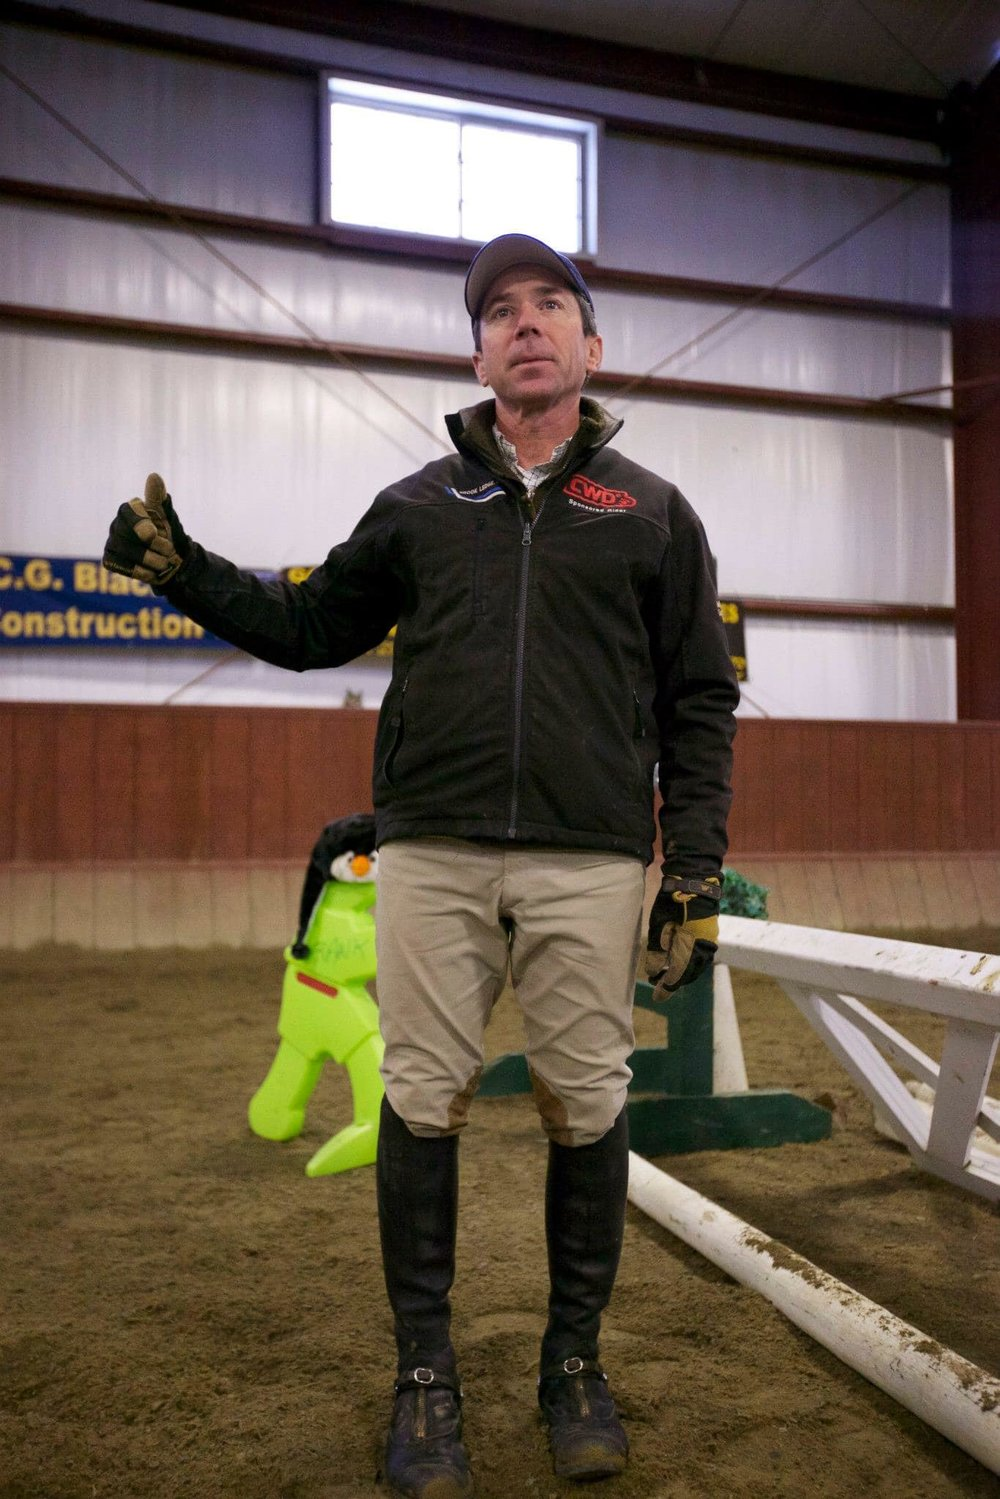 "KEN WHELIHAN - We believe that learning never ends and often host clinics throughout the year. Most recently we had Ken Whelihan on site.A former rider and trainer for Lionshare Farm and the Ox Ridge Hunt Club, Ken is the resident trainer for the Berkshire Equestrian Center. Everyone always appreciates his knowledge and input as a trainer, rider, and big ""R"" judge.MA Licensed Riding Instructor/ Trainer Ken's extensive knowledge (experience) judging, competing and teaching uniquely positions him at the forefront of the field. A Licensed Massachusetts Riding Instructor, a veteran grand prix competitor and trainer and a USEF judge of hunters and equitation for over 19 years, Ken qualified for and competed in the 1992 Olympic Selections trials for Barcelona at Gladstone and Devon.During his illustrious career, he produced Zone 1 USEF two-time Horse-of-the-Year, ""Tanglewood,"" regular working hunters; rode Zone 2 USEF Horse of the Year, ""Ramsey"" regular conformation hunters; and rode and produced over a dozen jumpers to Grand Prix including Rashnu, Ballybay, Lucky Again, Ashe, Skip With Me, Tango, Ballybay Nightcap and others. Additionally, Ken coached riders to wins at the Marshal and Sterling, New England and Connecticut finals."